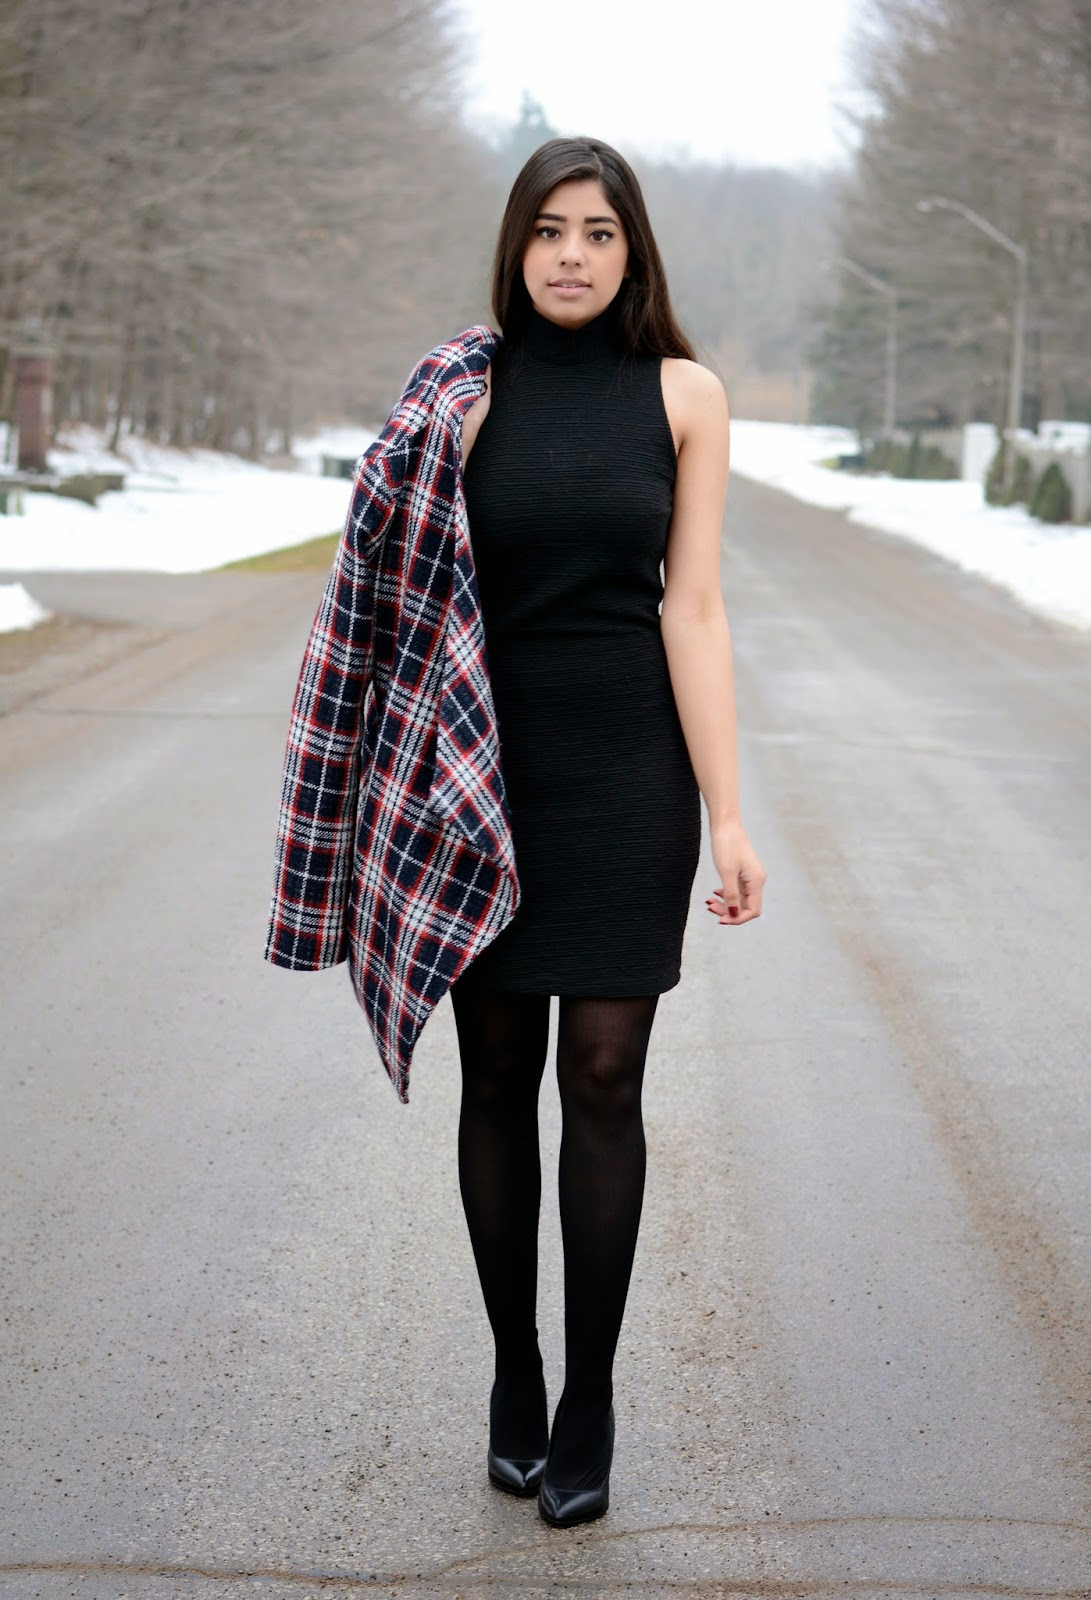 Black dress leggings - I M That Girl That Always Shows Up Overdressed Yes I Got The Memo That It Was A Casual Occasion But You See I Don T Really Do Leggings And Hoodies